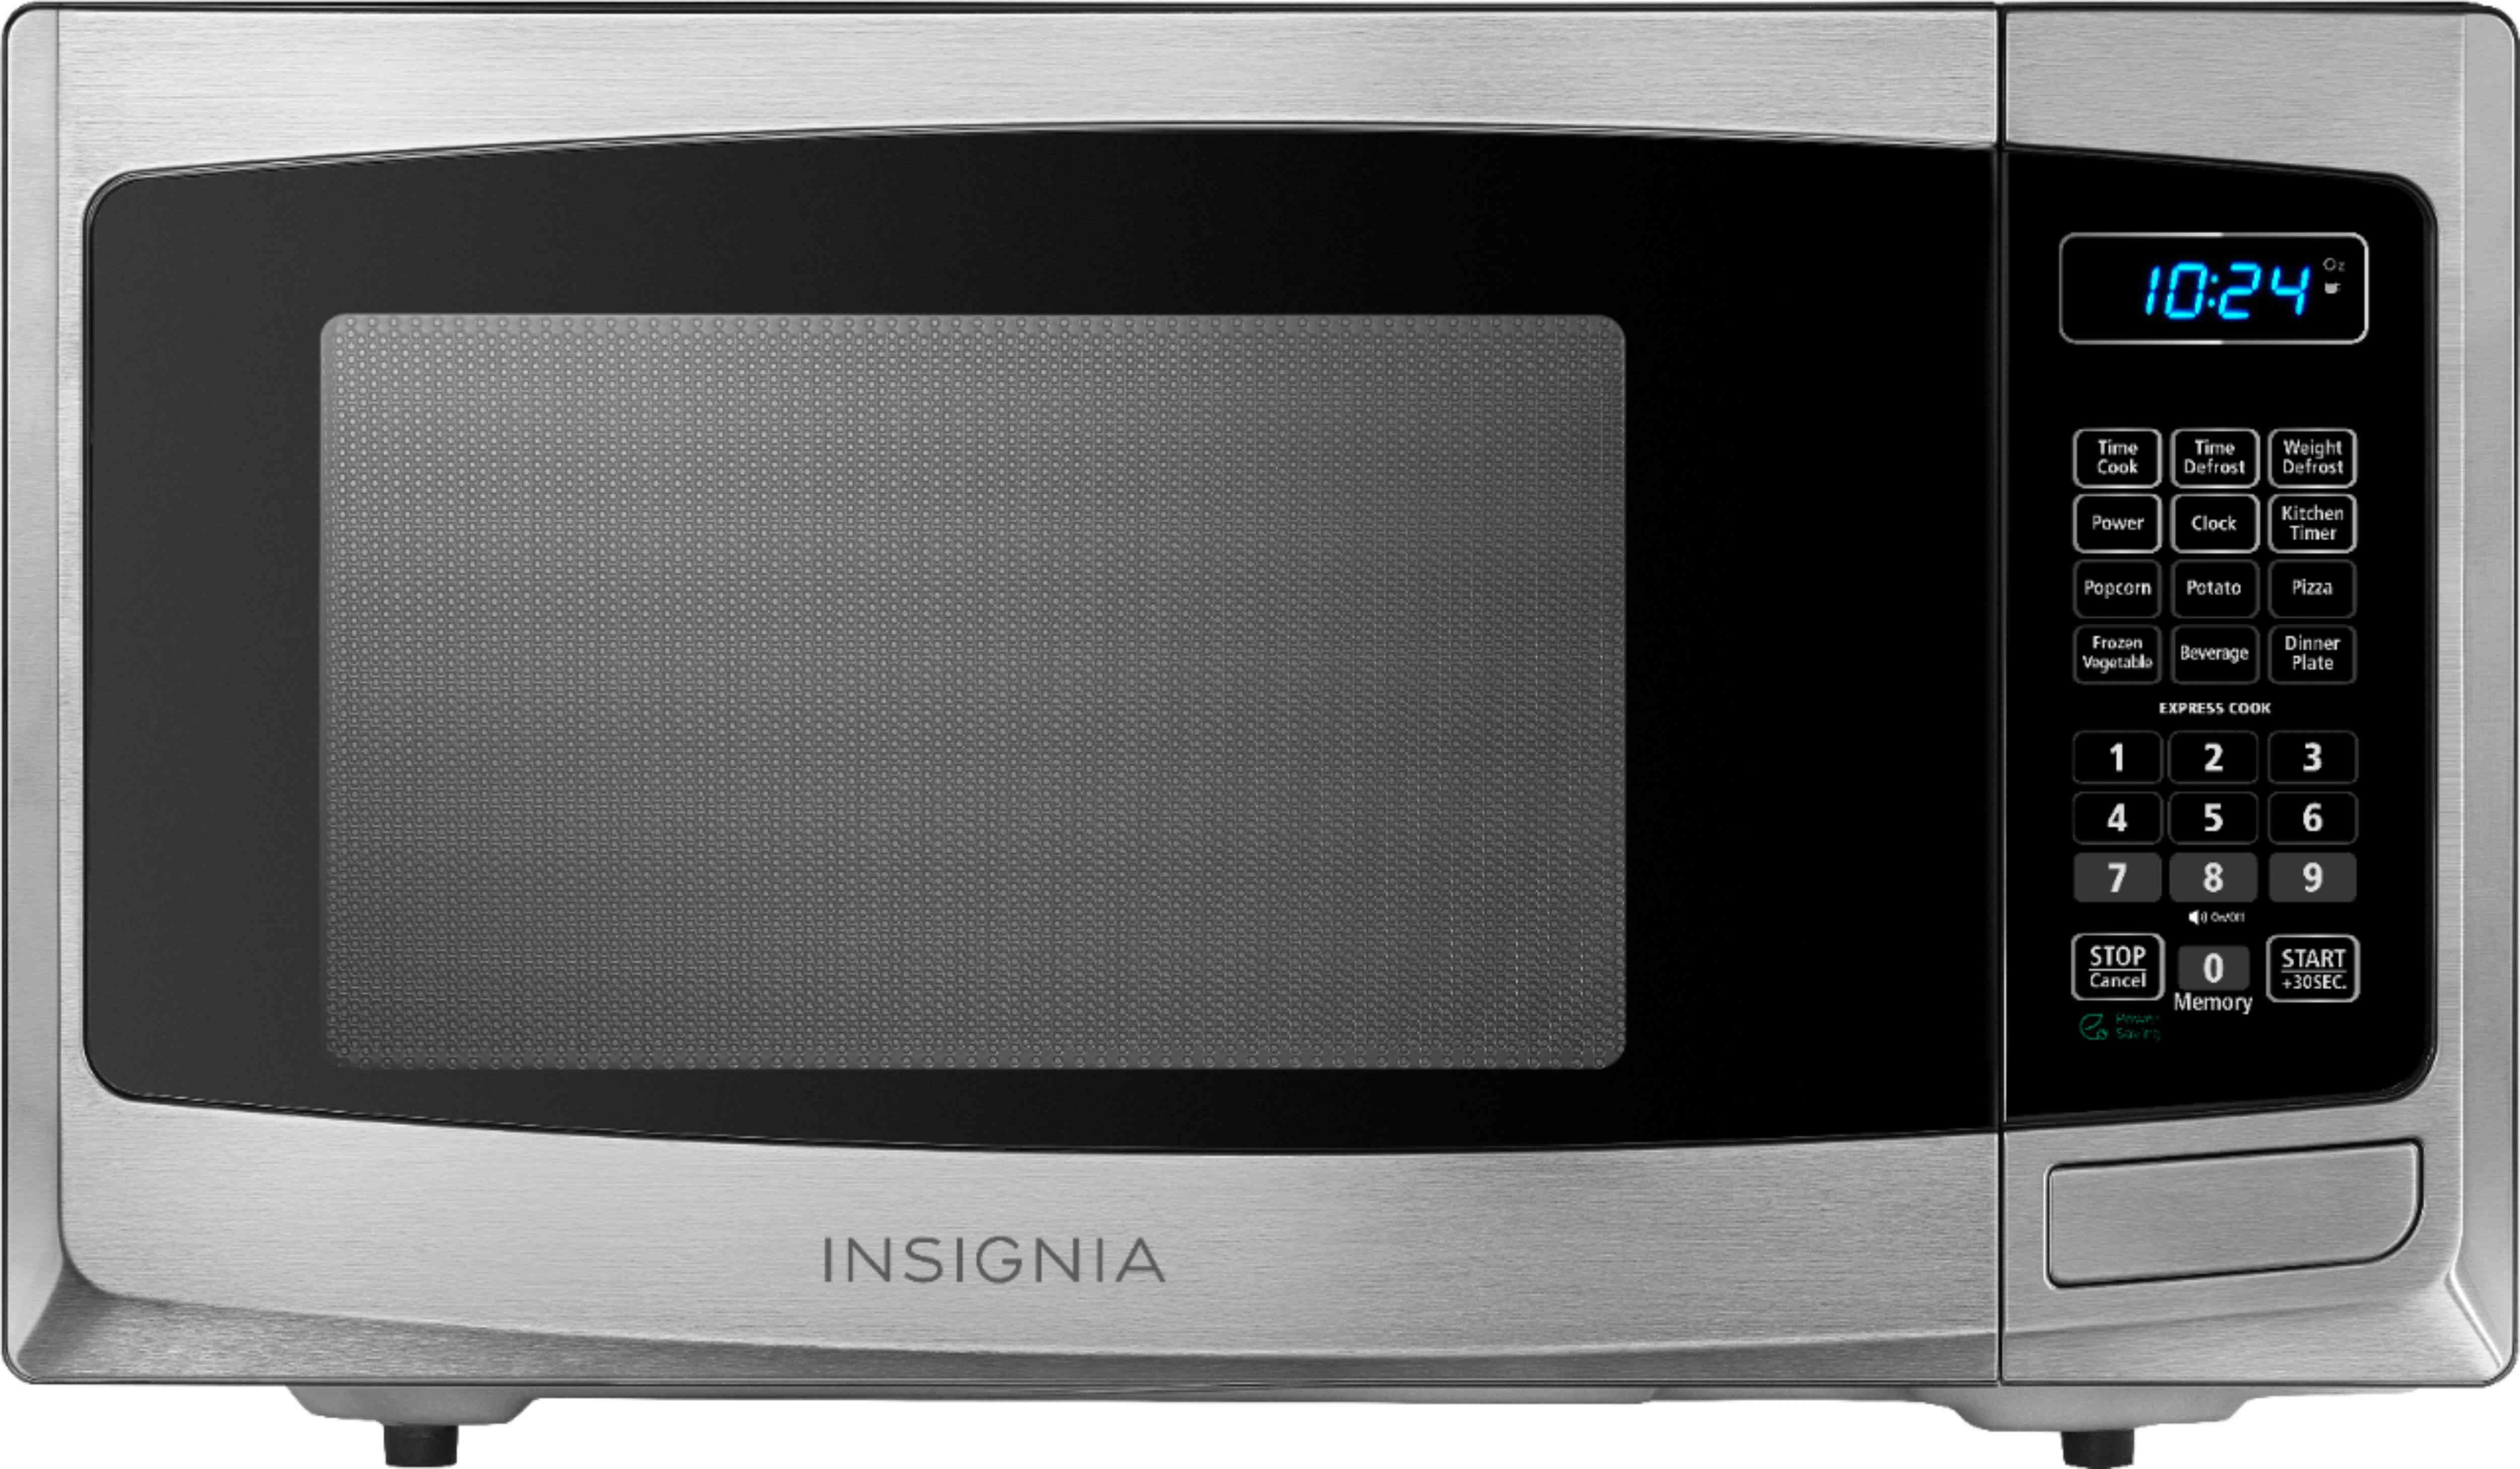 insignia-compact-stainless-steel-microwave